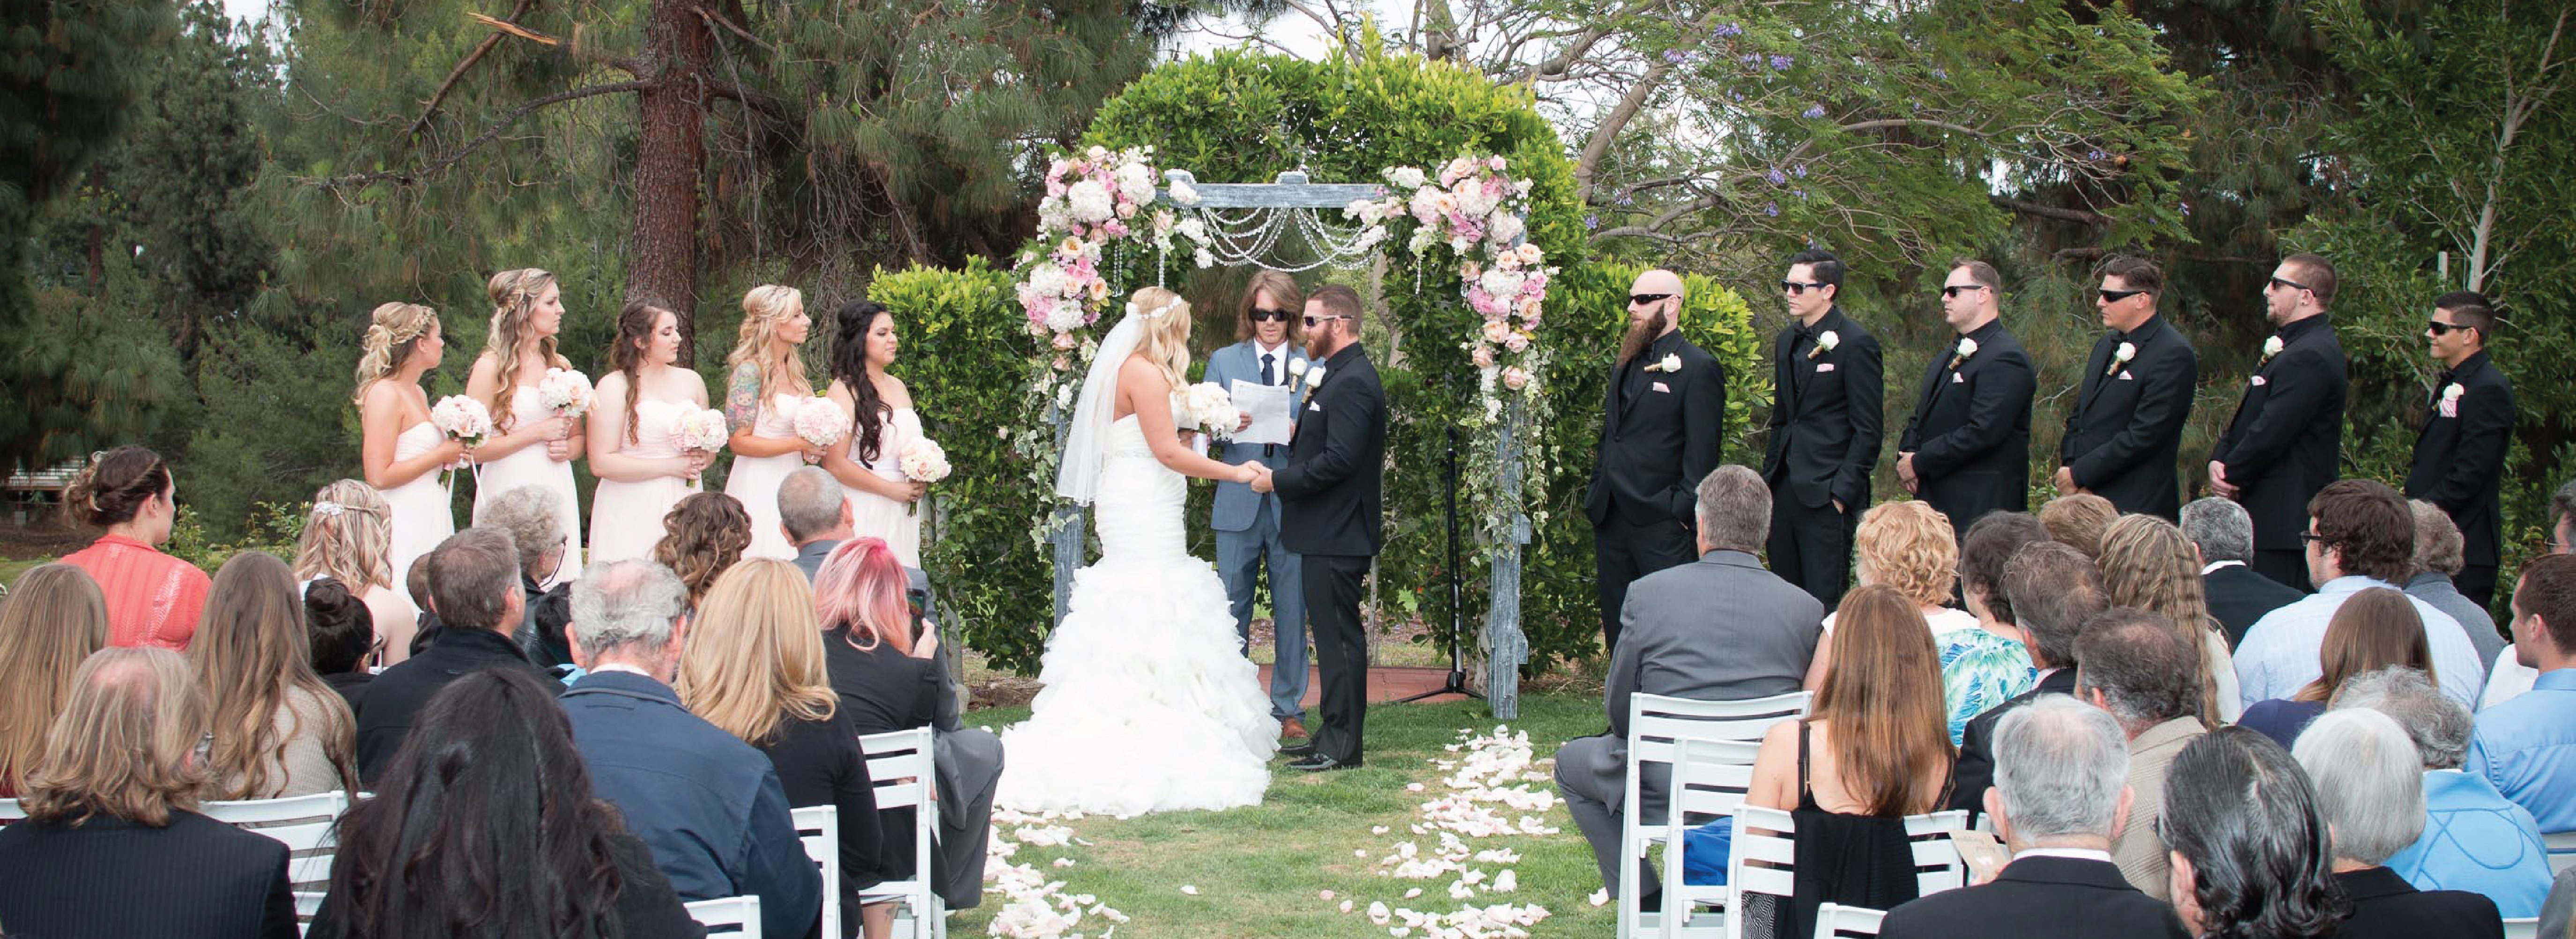 Granada Hills Wedding Venues At The Knollwood Country Club